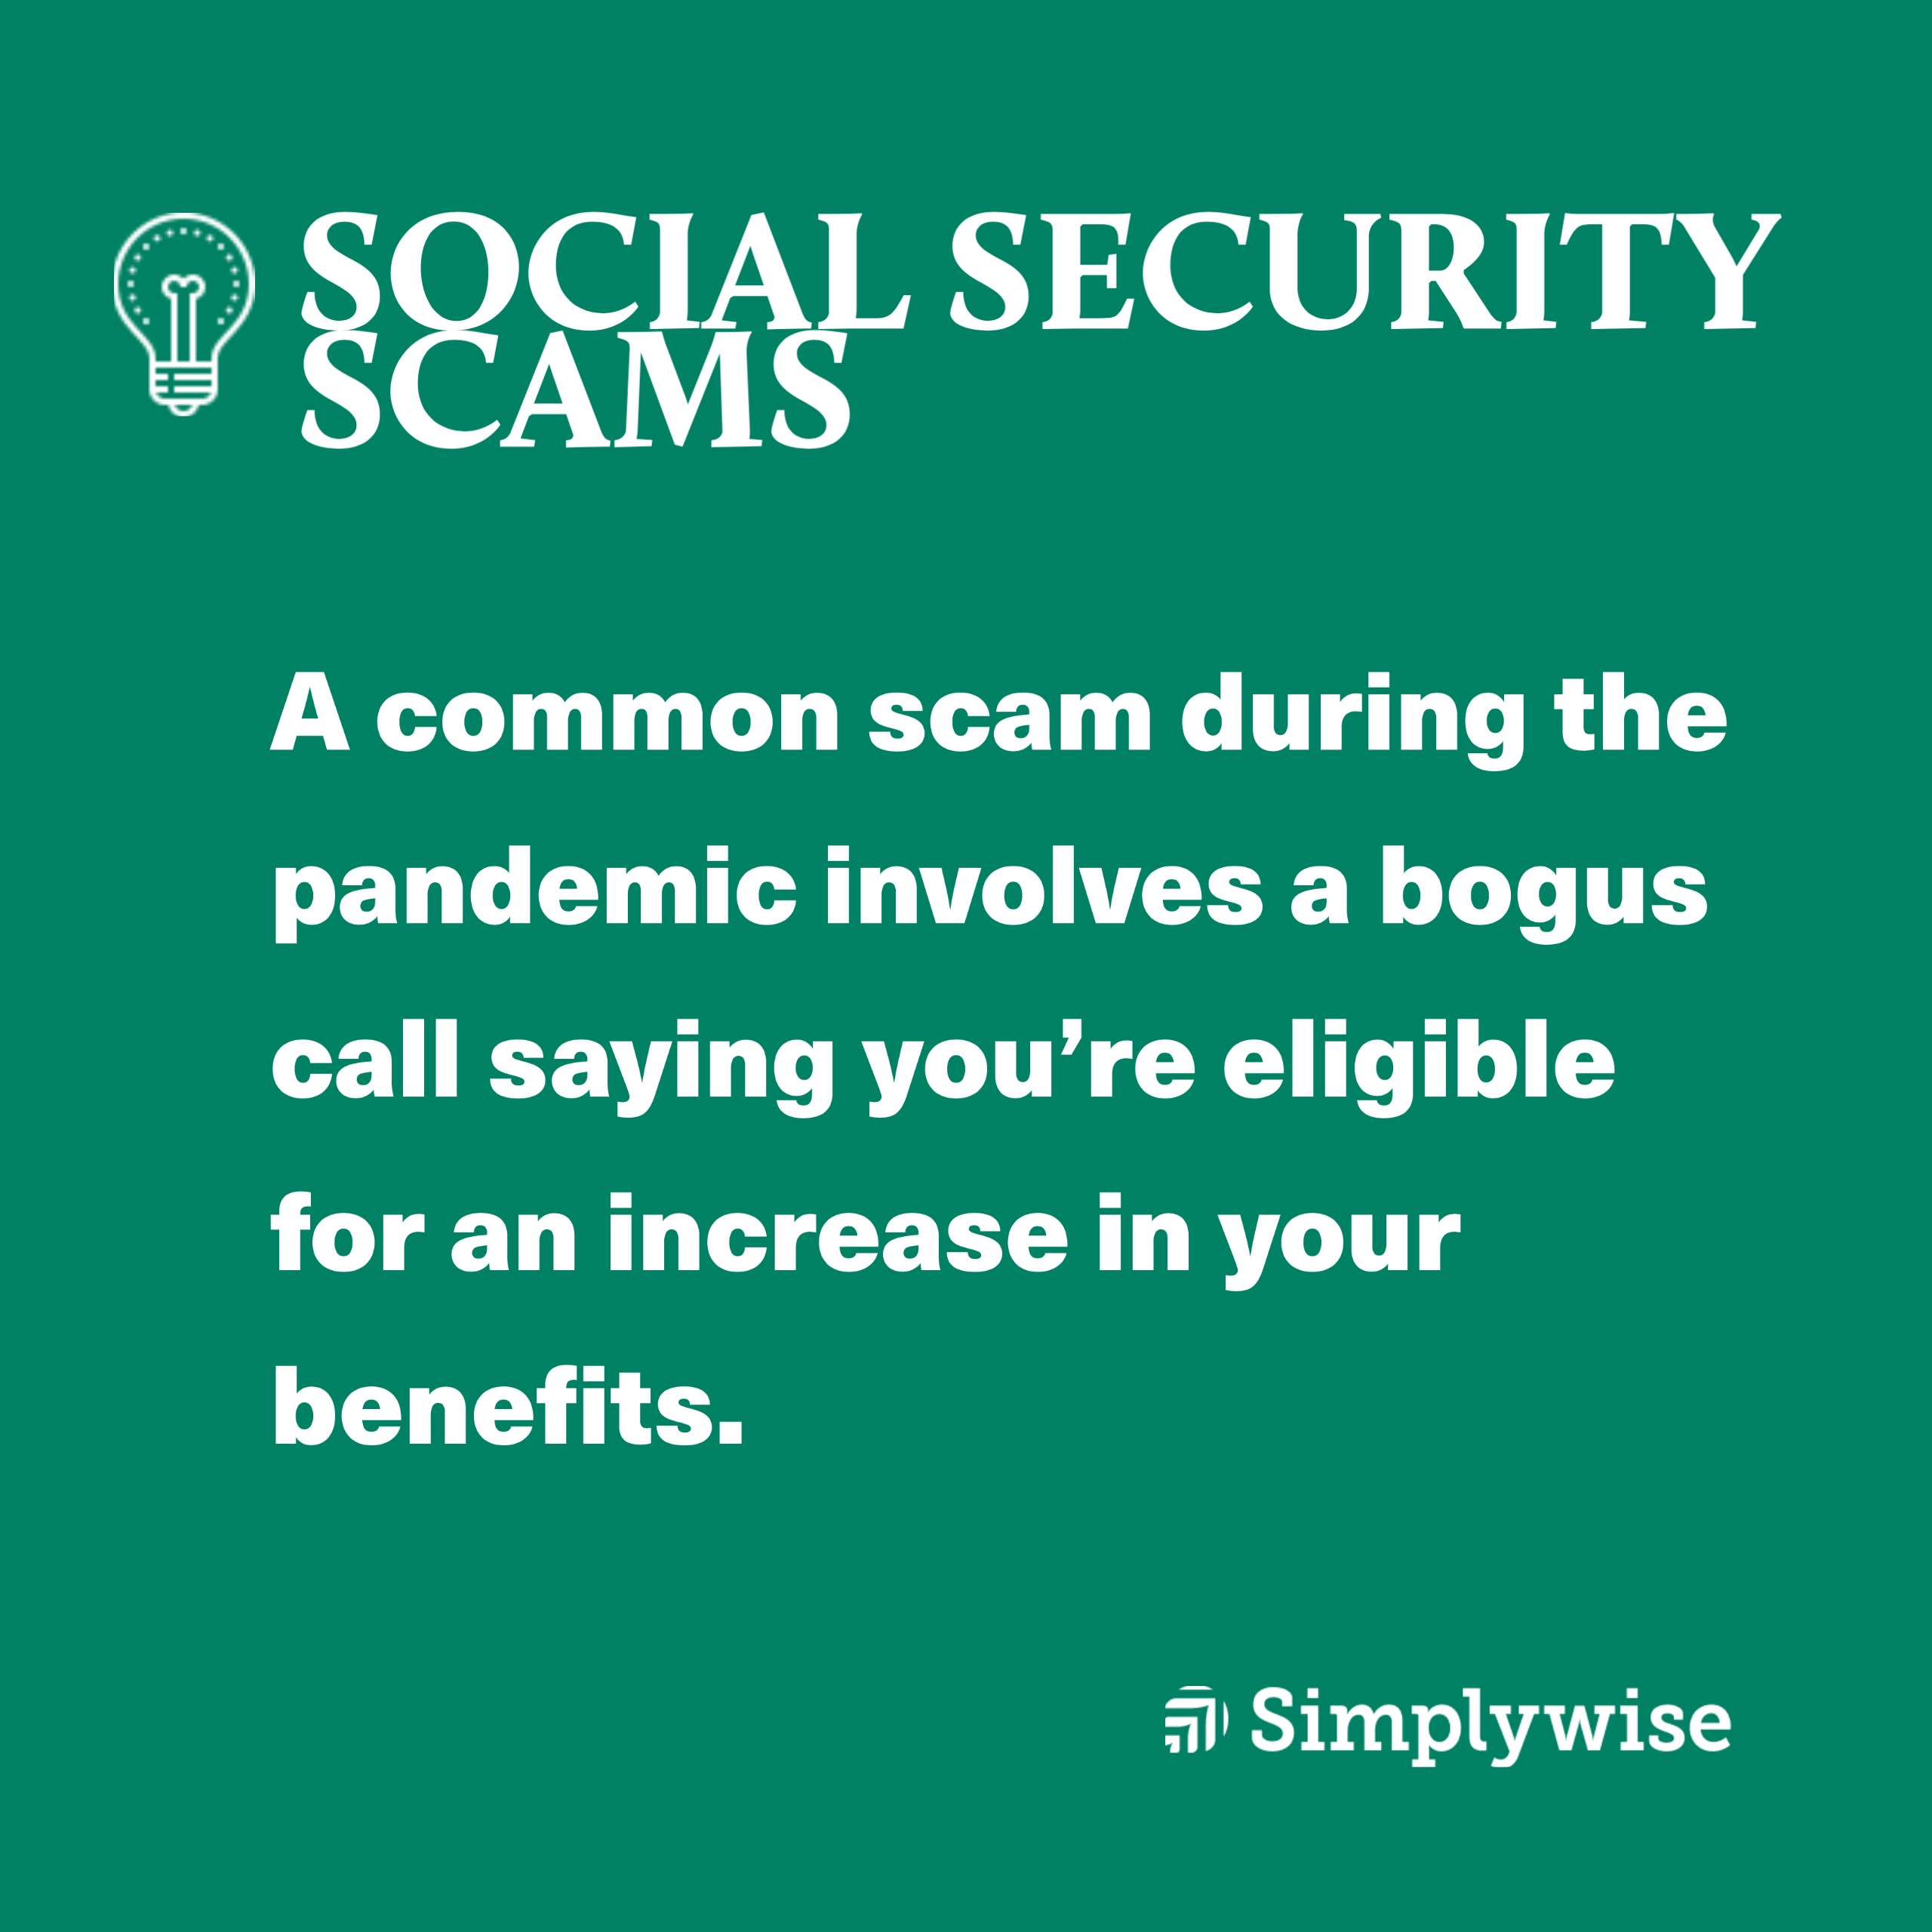 social security fraud scam